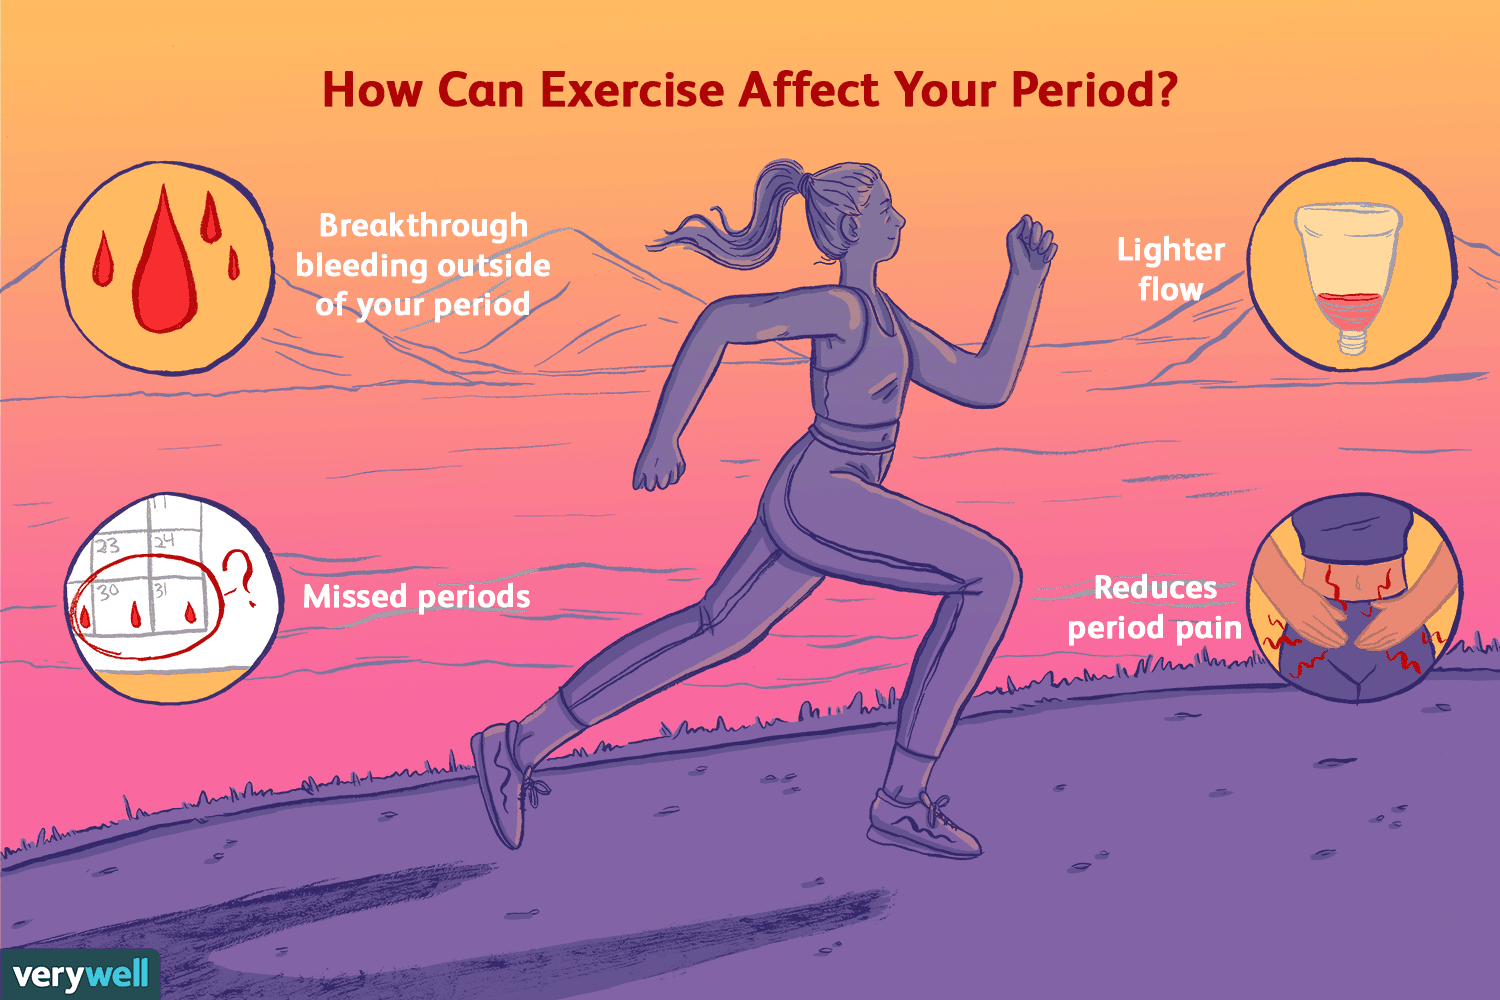 Changes Exercise Has On Your Period